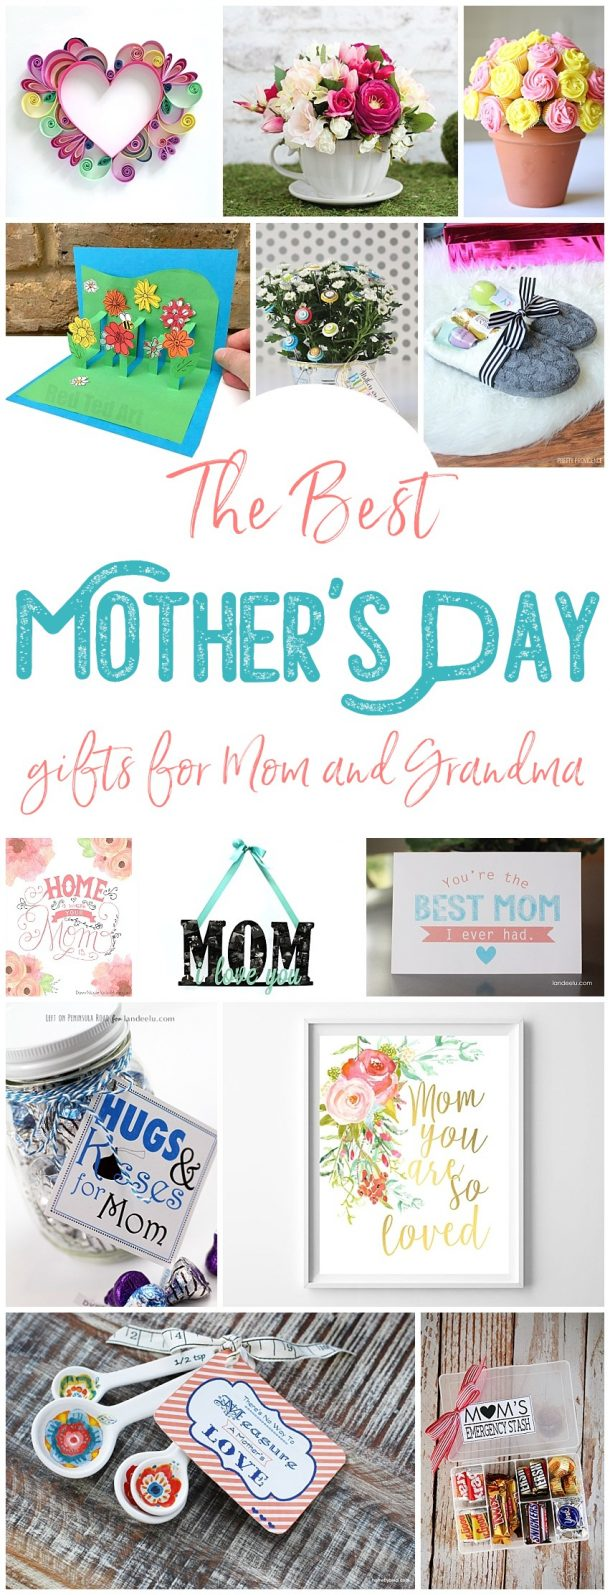 Do It Yourself Home Design: The BEST Easy DIY Mother's Day Gifts And Treats Ideas